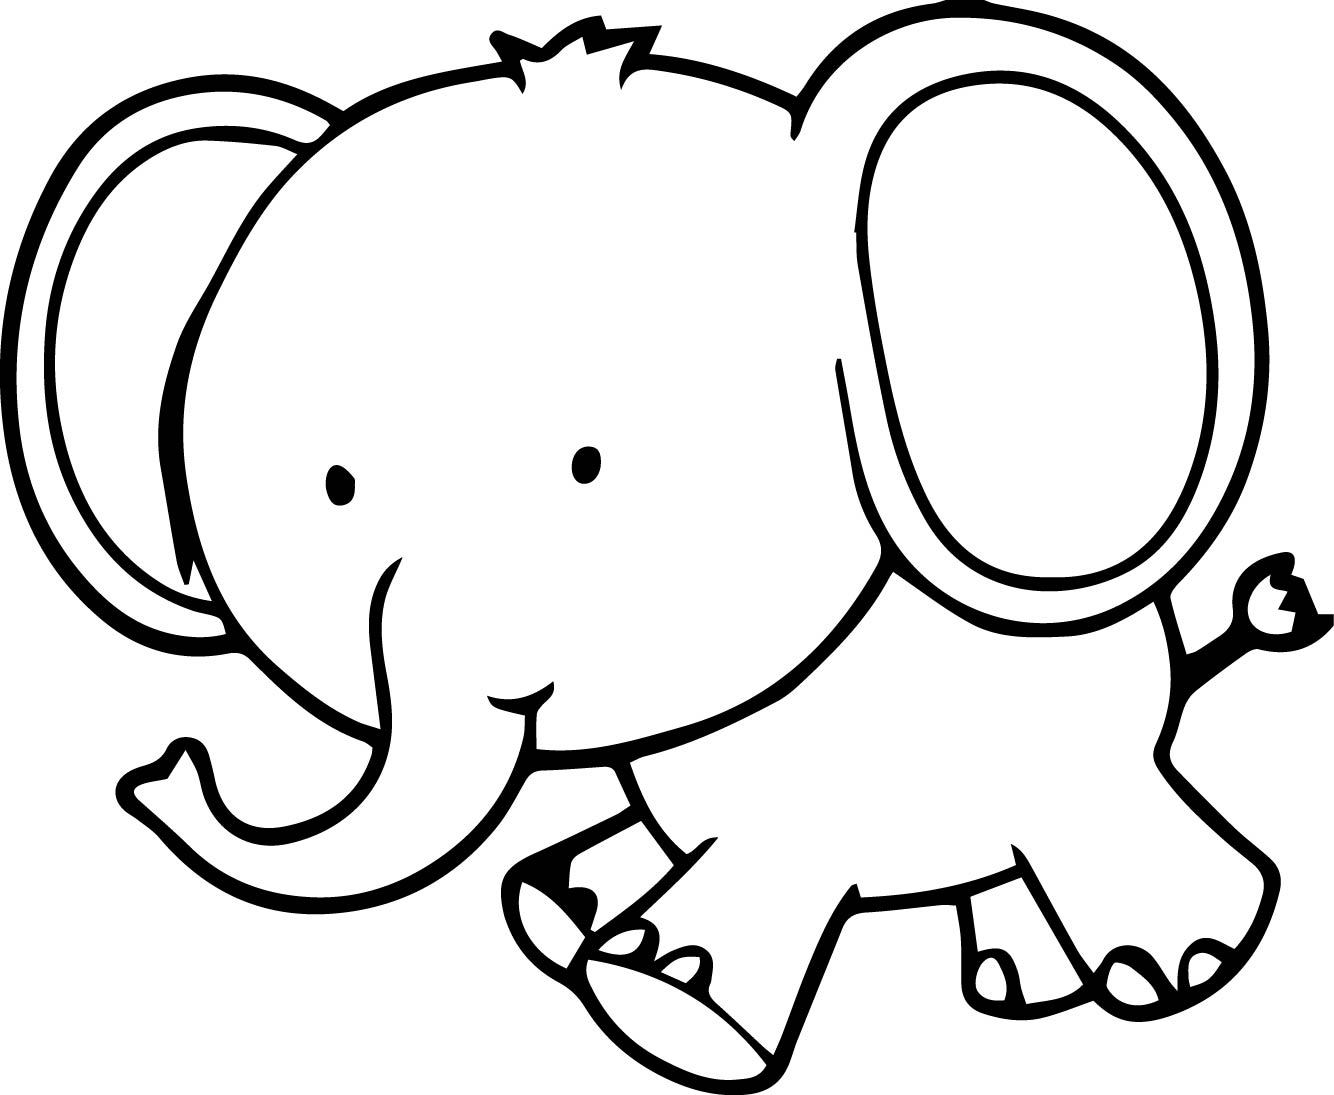 adorable baby elephant coloring pages cute baby elephant coloring page pusharts images elephant baby pages adorable coloring